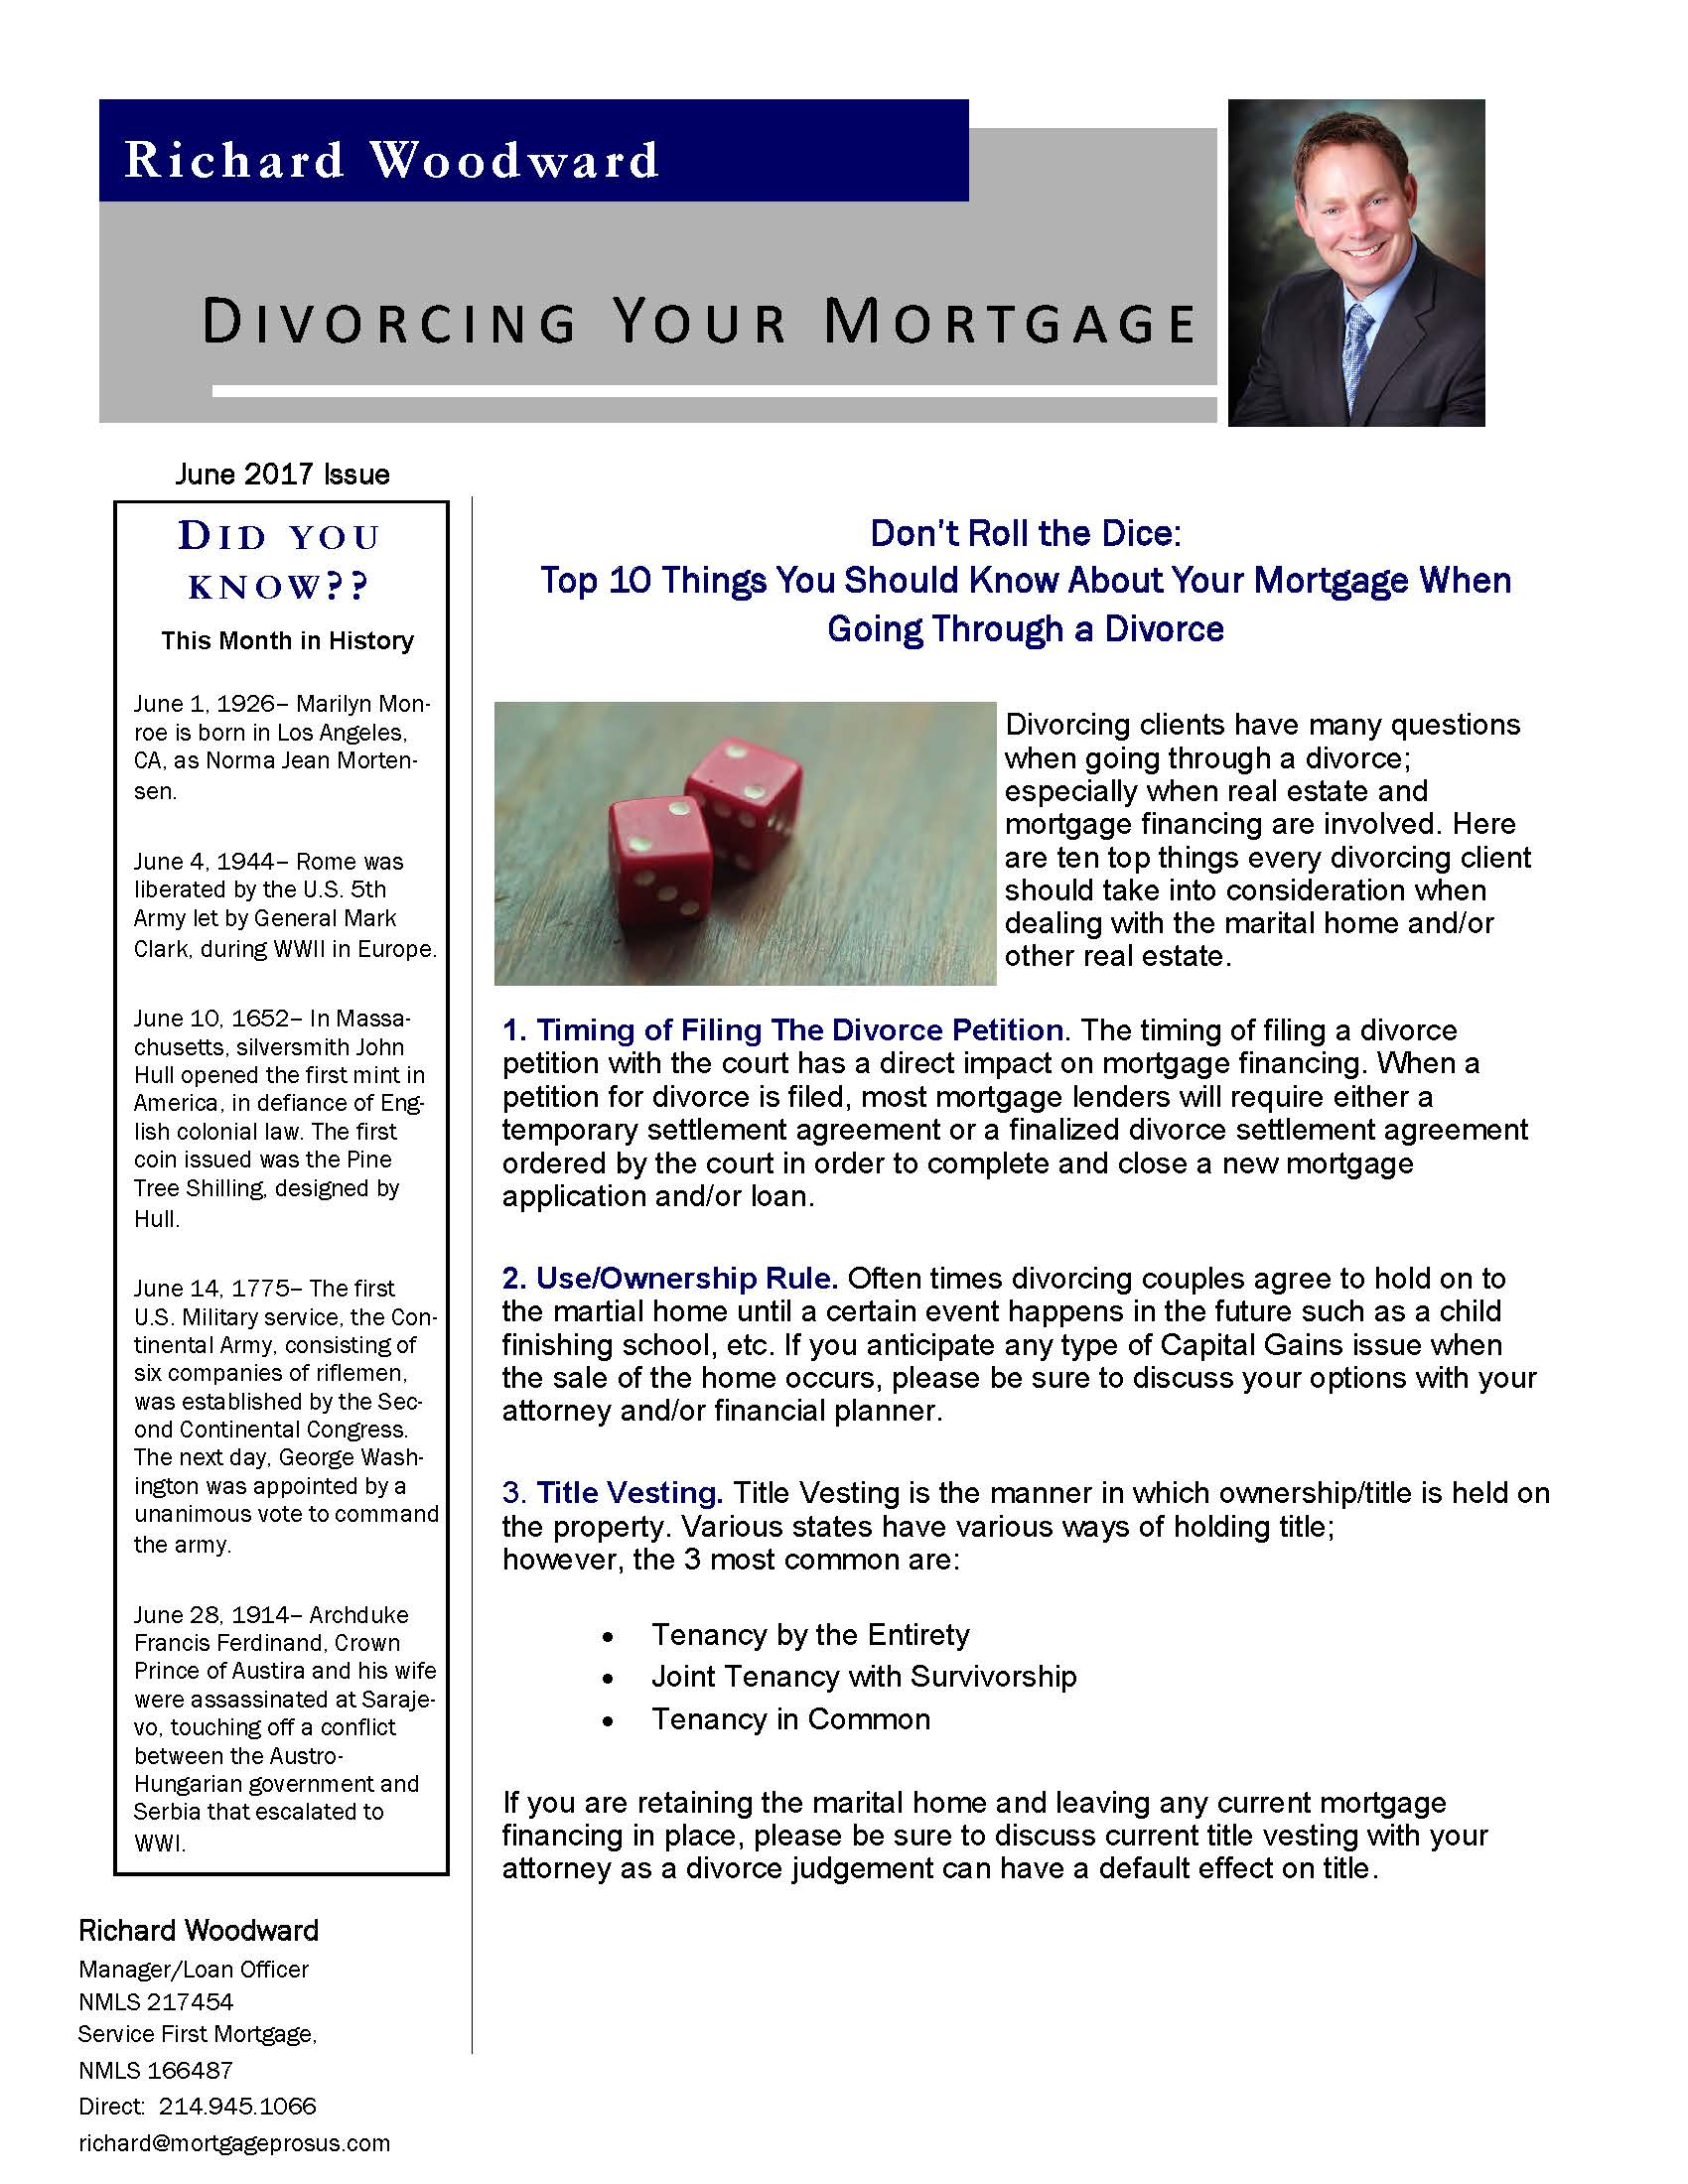 Top 10 Things You Should Know About Your Mortgage When